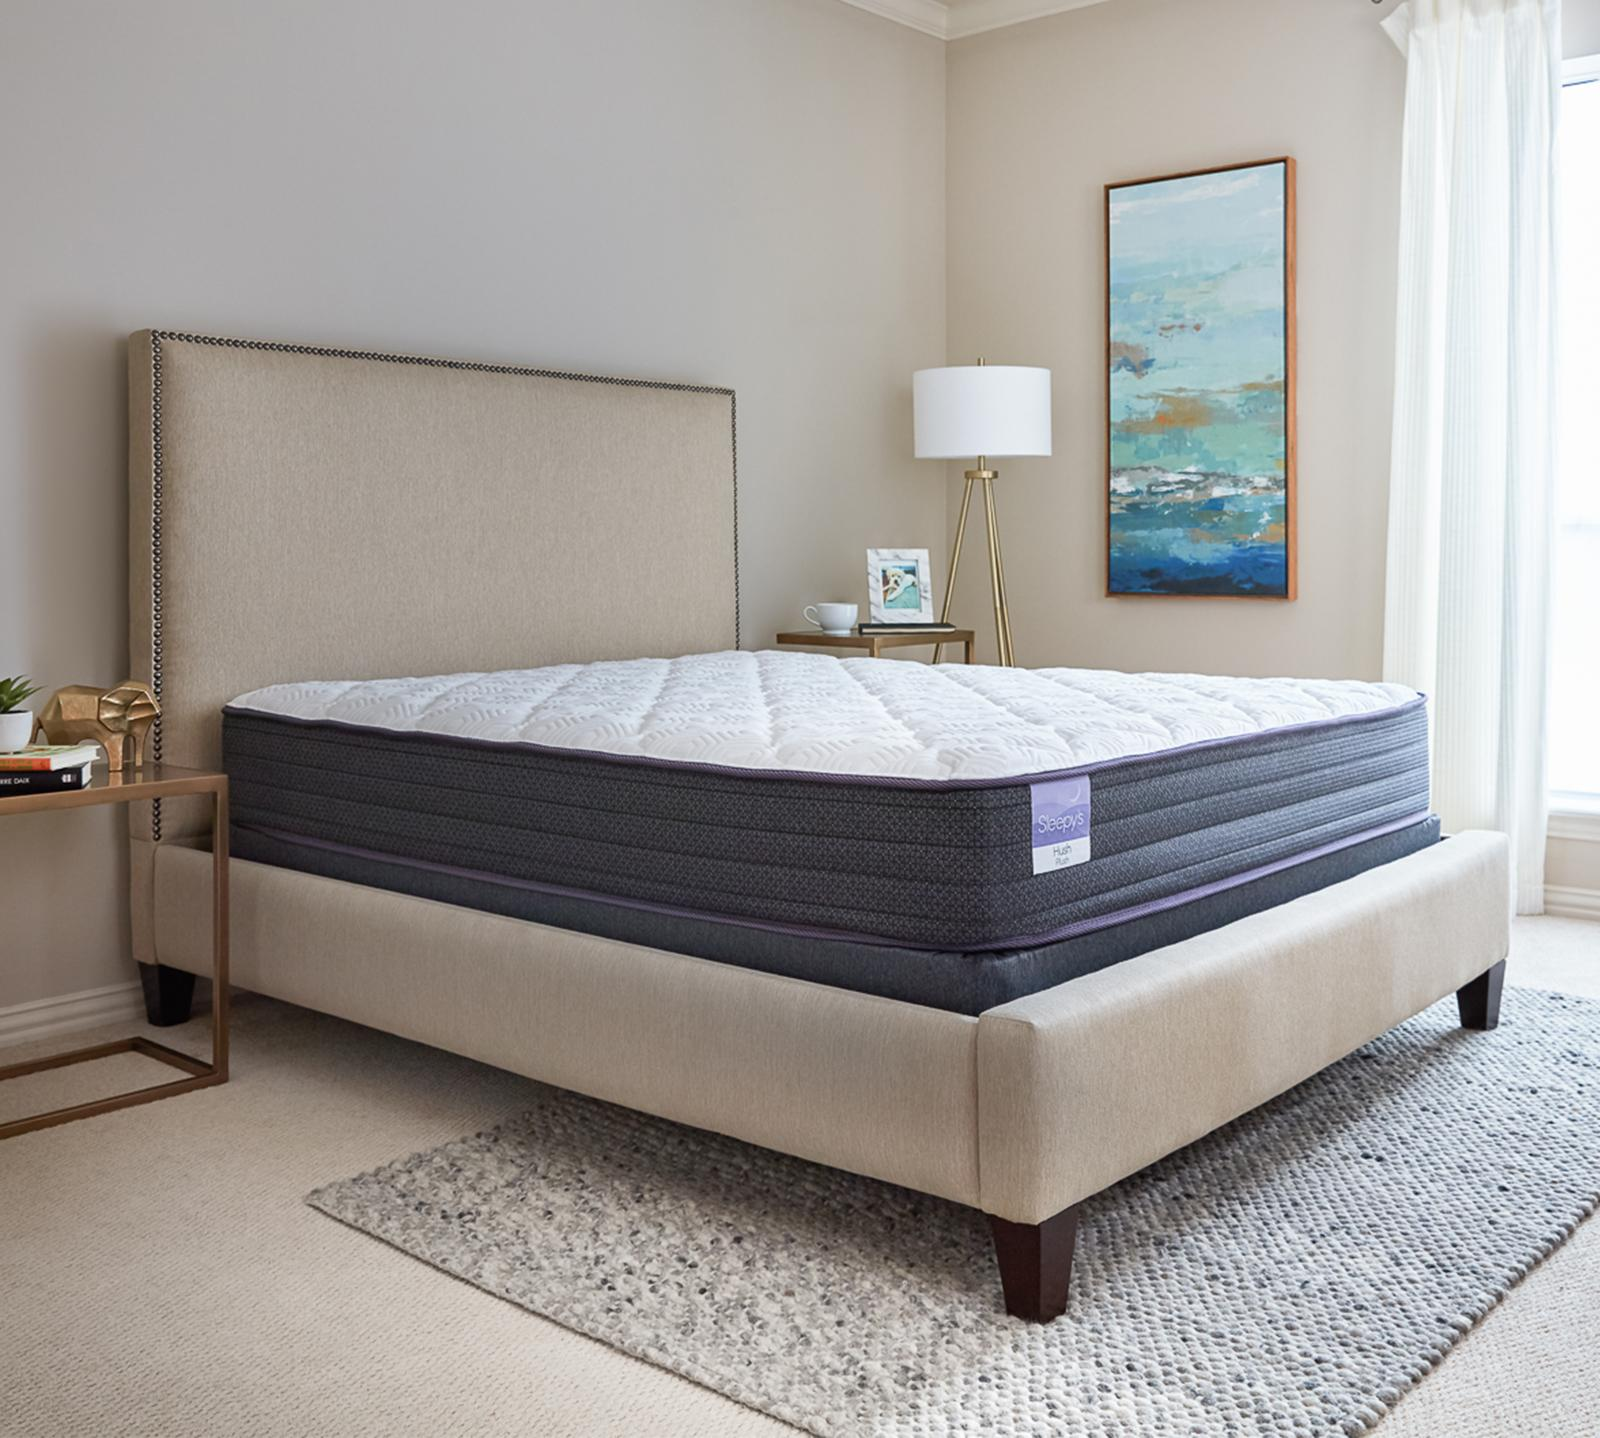 "Stretch your budget further and stretch out on your new Sleepy's mattress. The Sleepy's Hush 10"" plush mattress contours perfectly to every curve by utilizing four unique layers of foam. The combination of soft quilt foam layers and the cooling gel-infused memory foam not only provide superior pressure relief but also dissipates body heat. The encased coil support system contains individually wrapped coils that perform independently of each other to provide motion isolation, reducing tossing and turning. At the very bottom, a layer of high-density, shock-absorbing base foam helps the encased coils react to your body movement and enhances support."